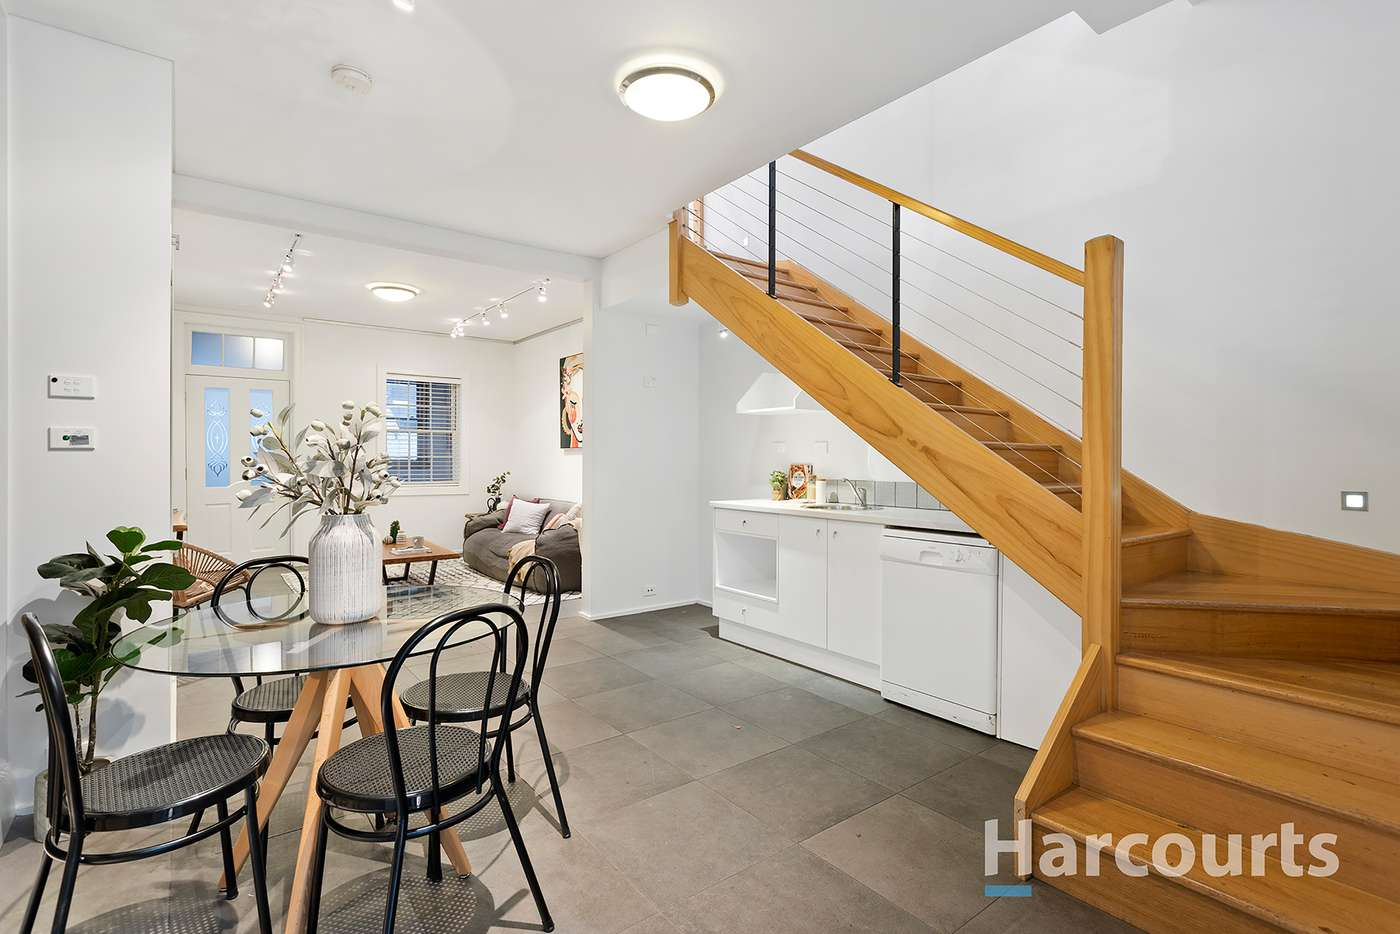 Fifth view of Homely house listing, 89 Elder Street, Lambton NSW 2299